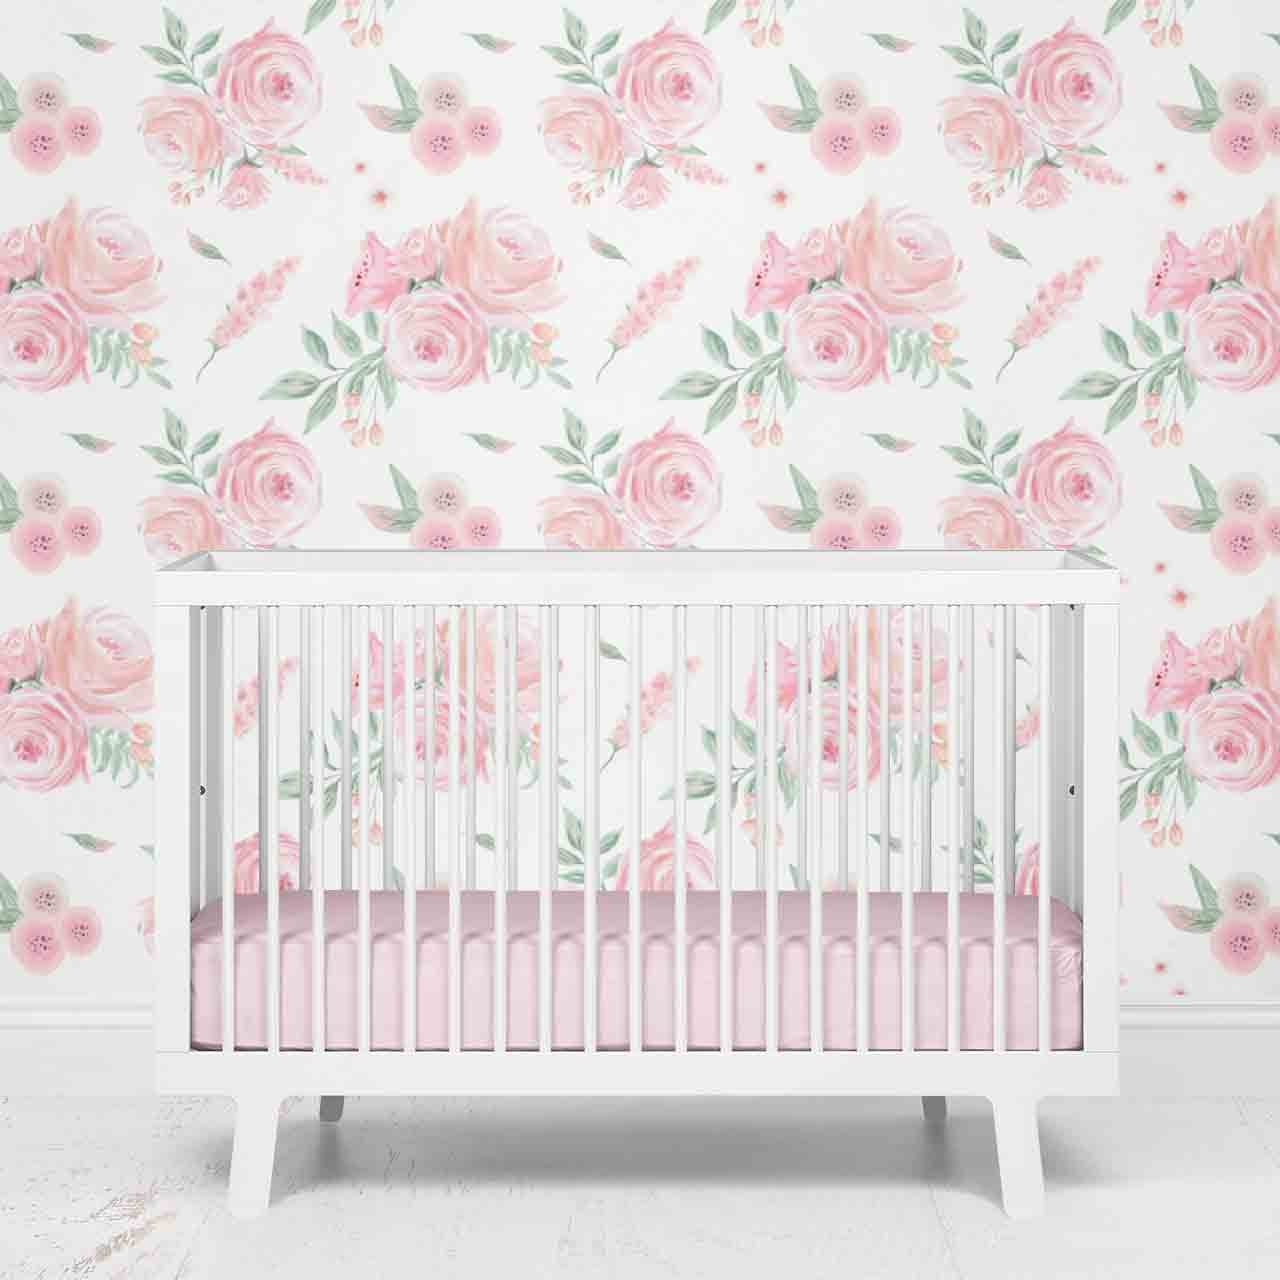 Blush Rose Floral Removable Wallpaper Caden Lane